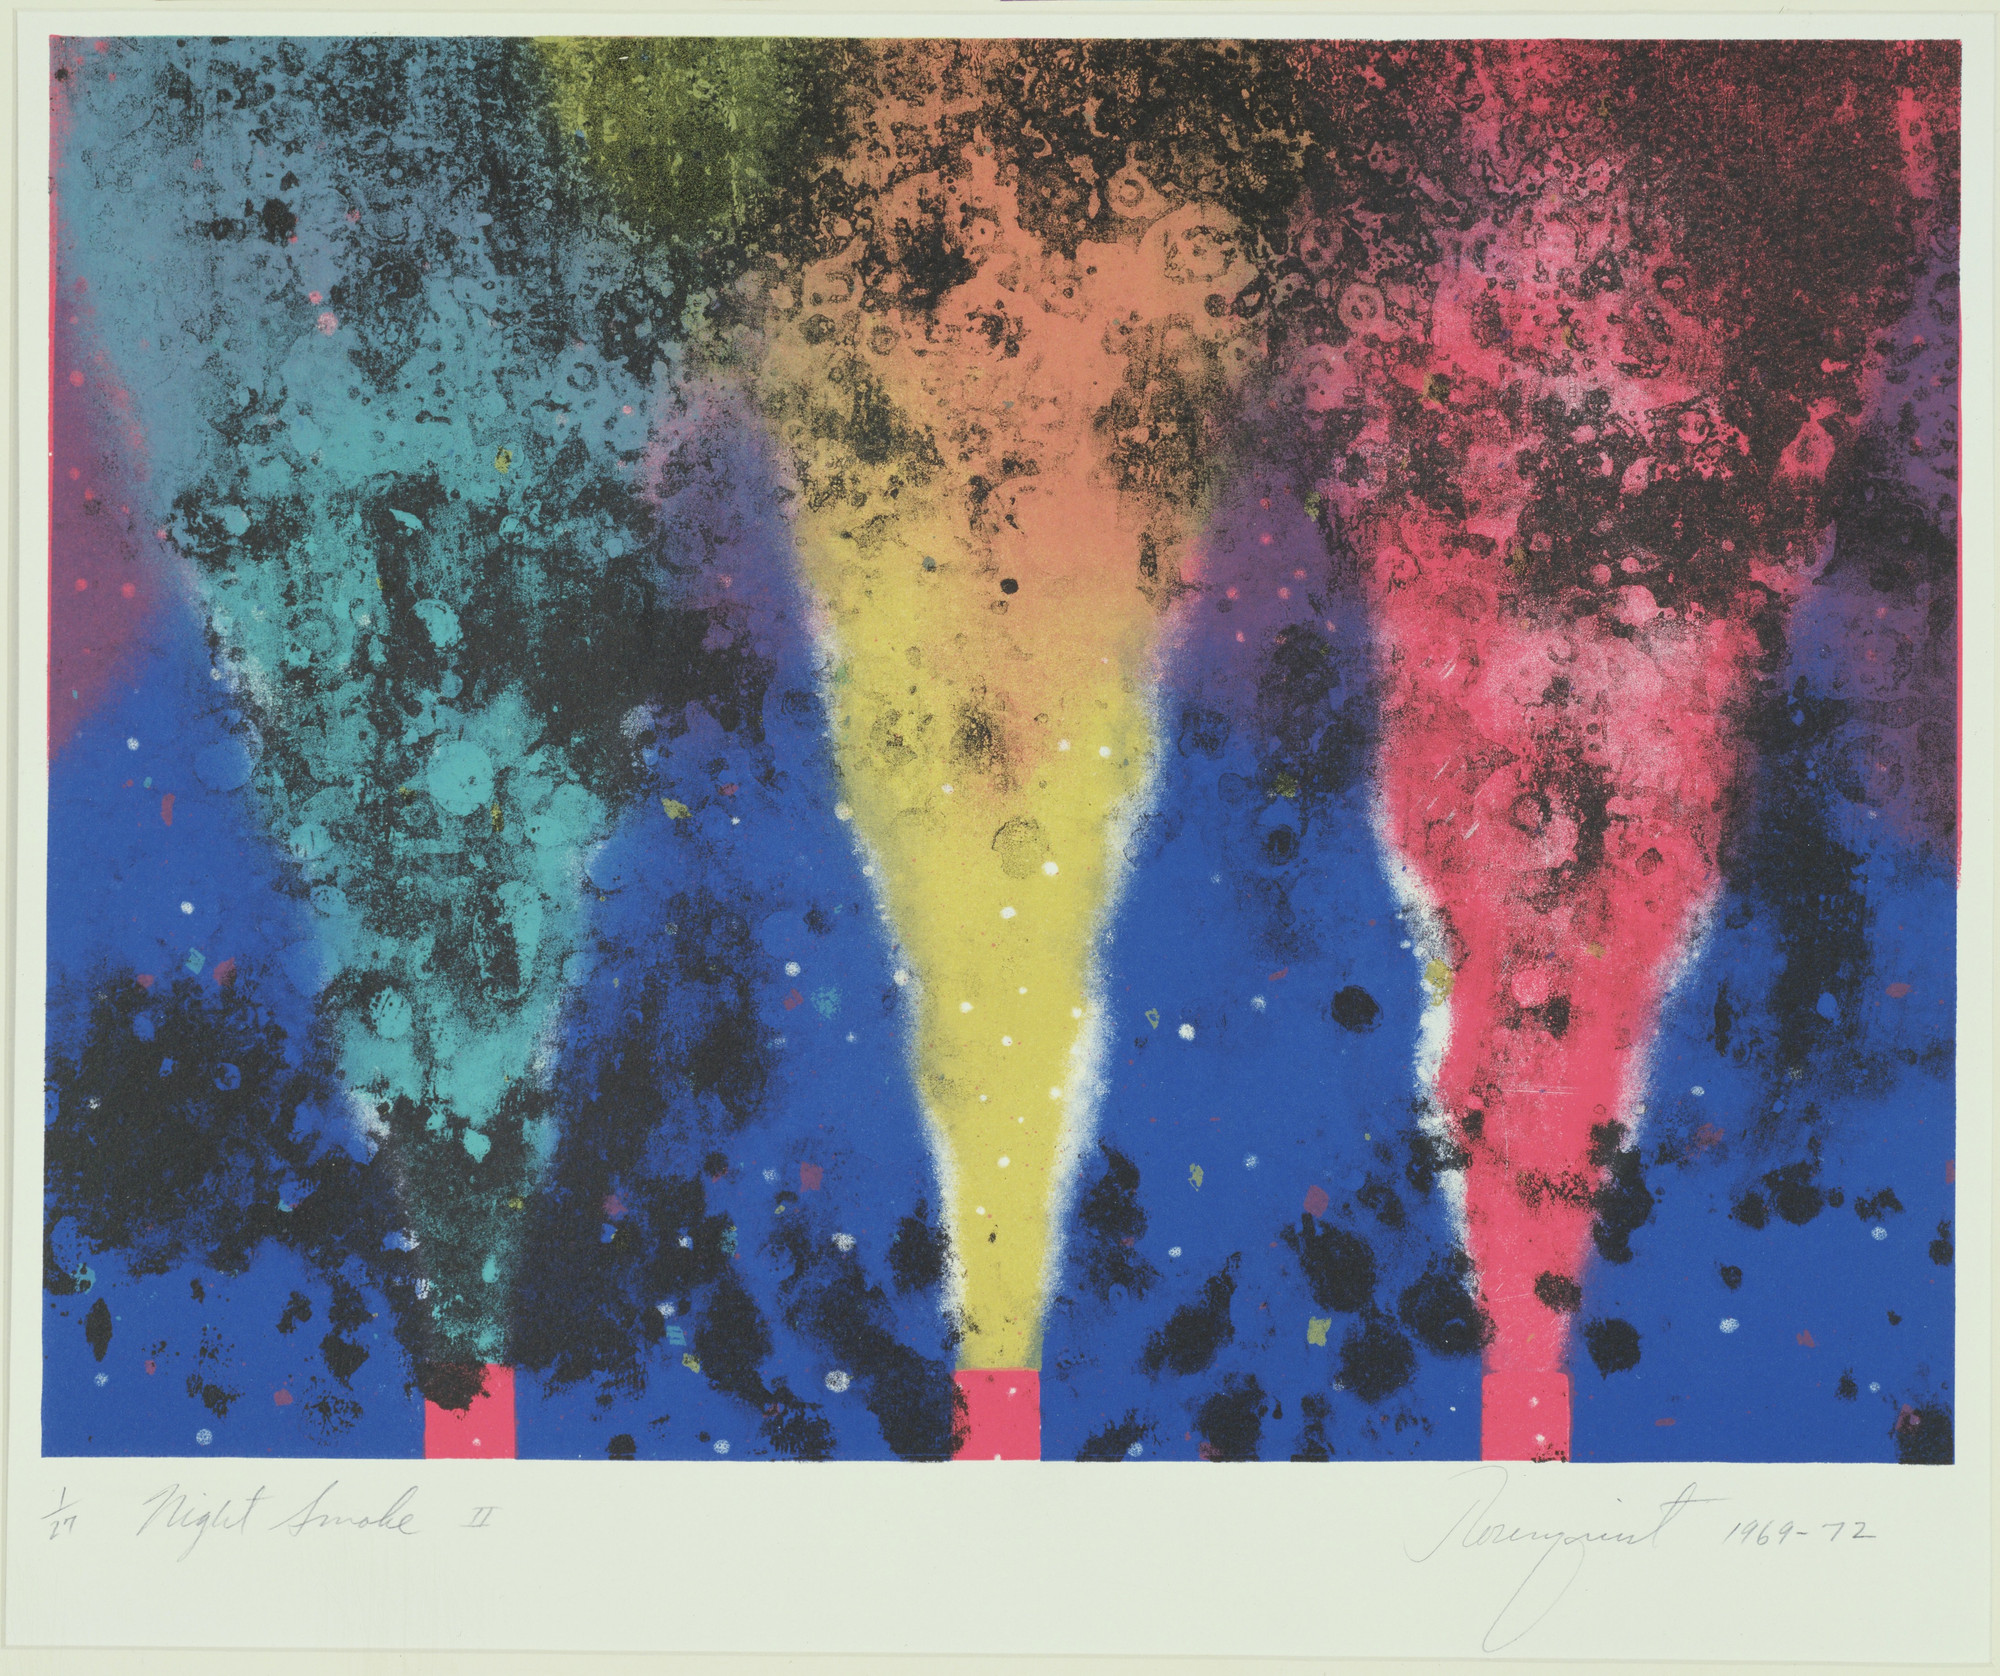 James Rosenquist. Night Smoke. 1969-70